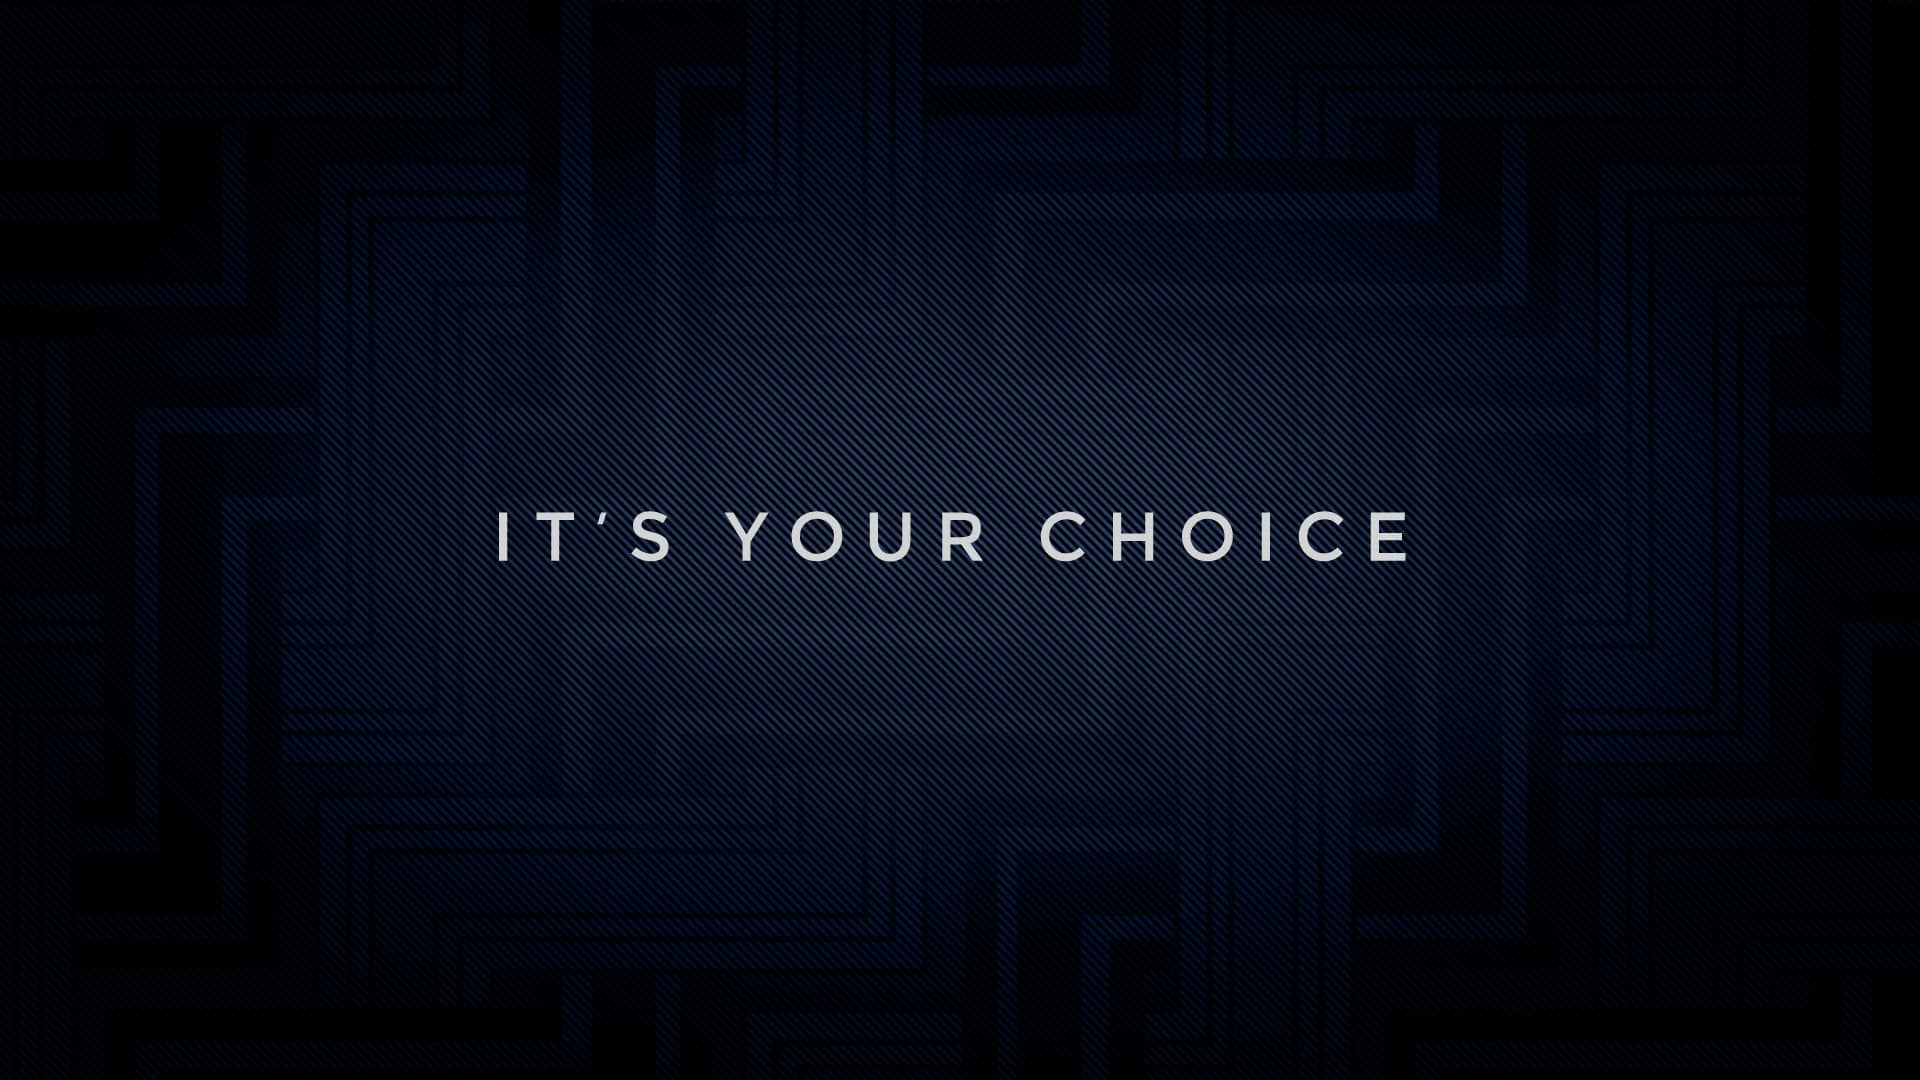 It's Your Choice graphic